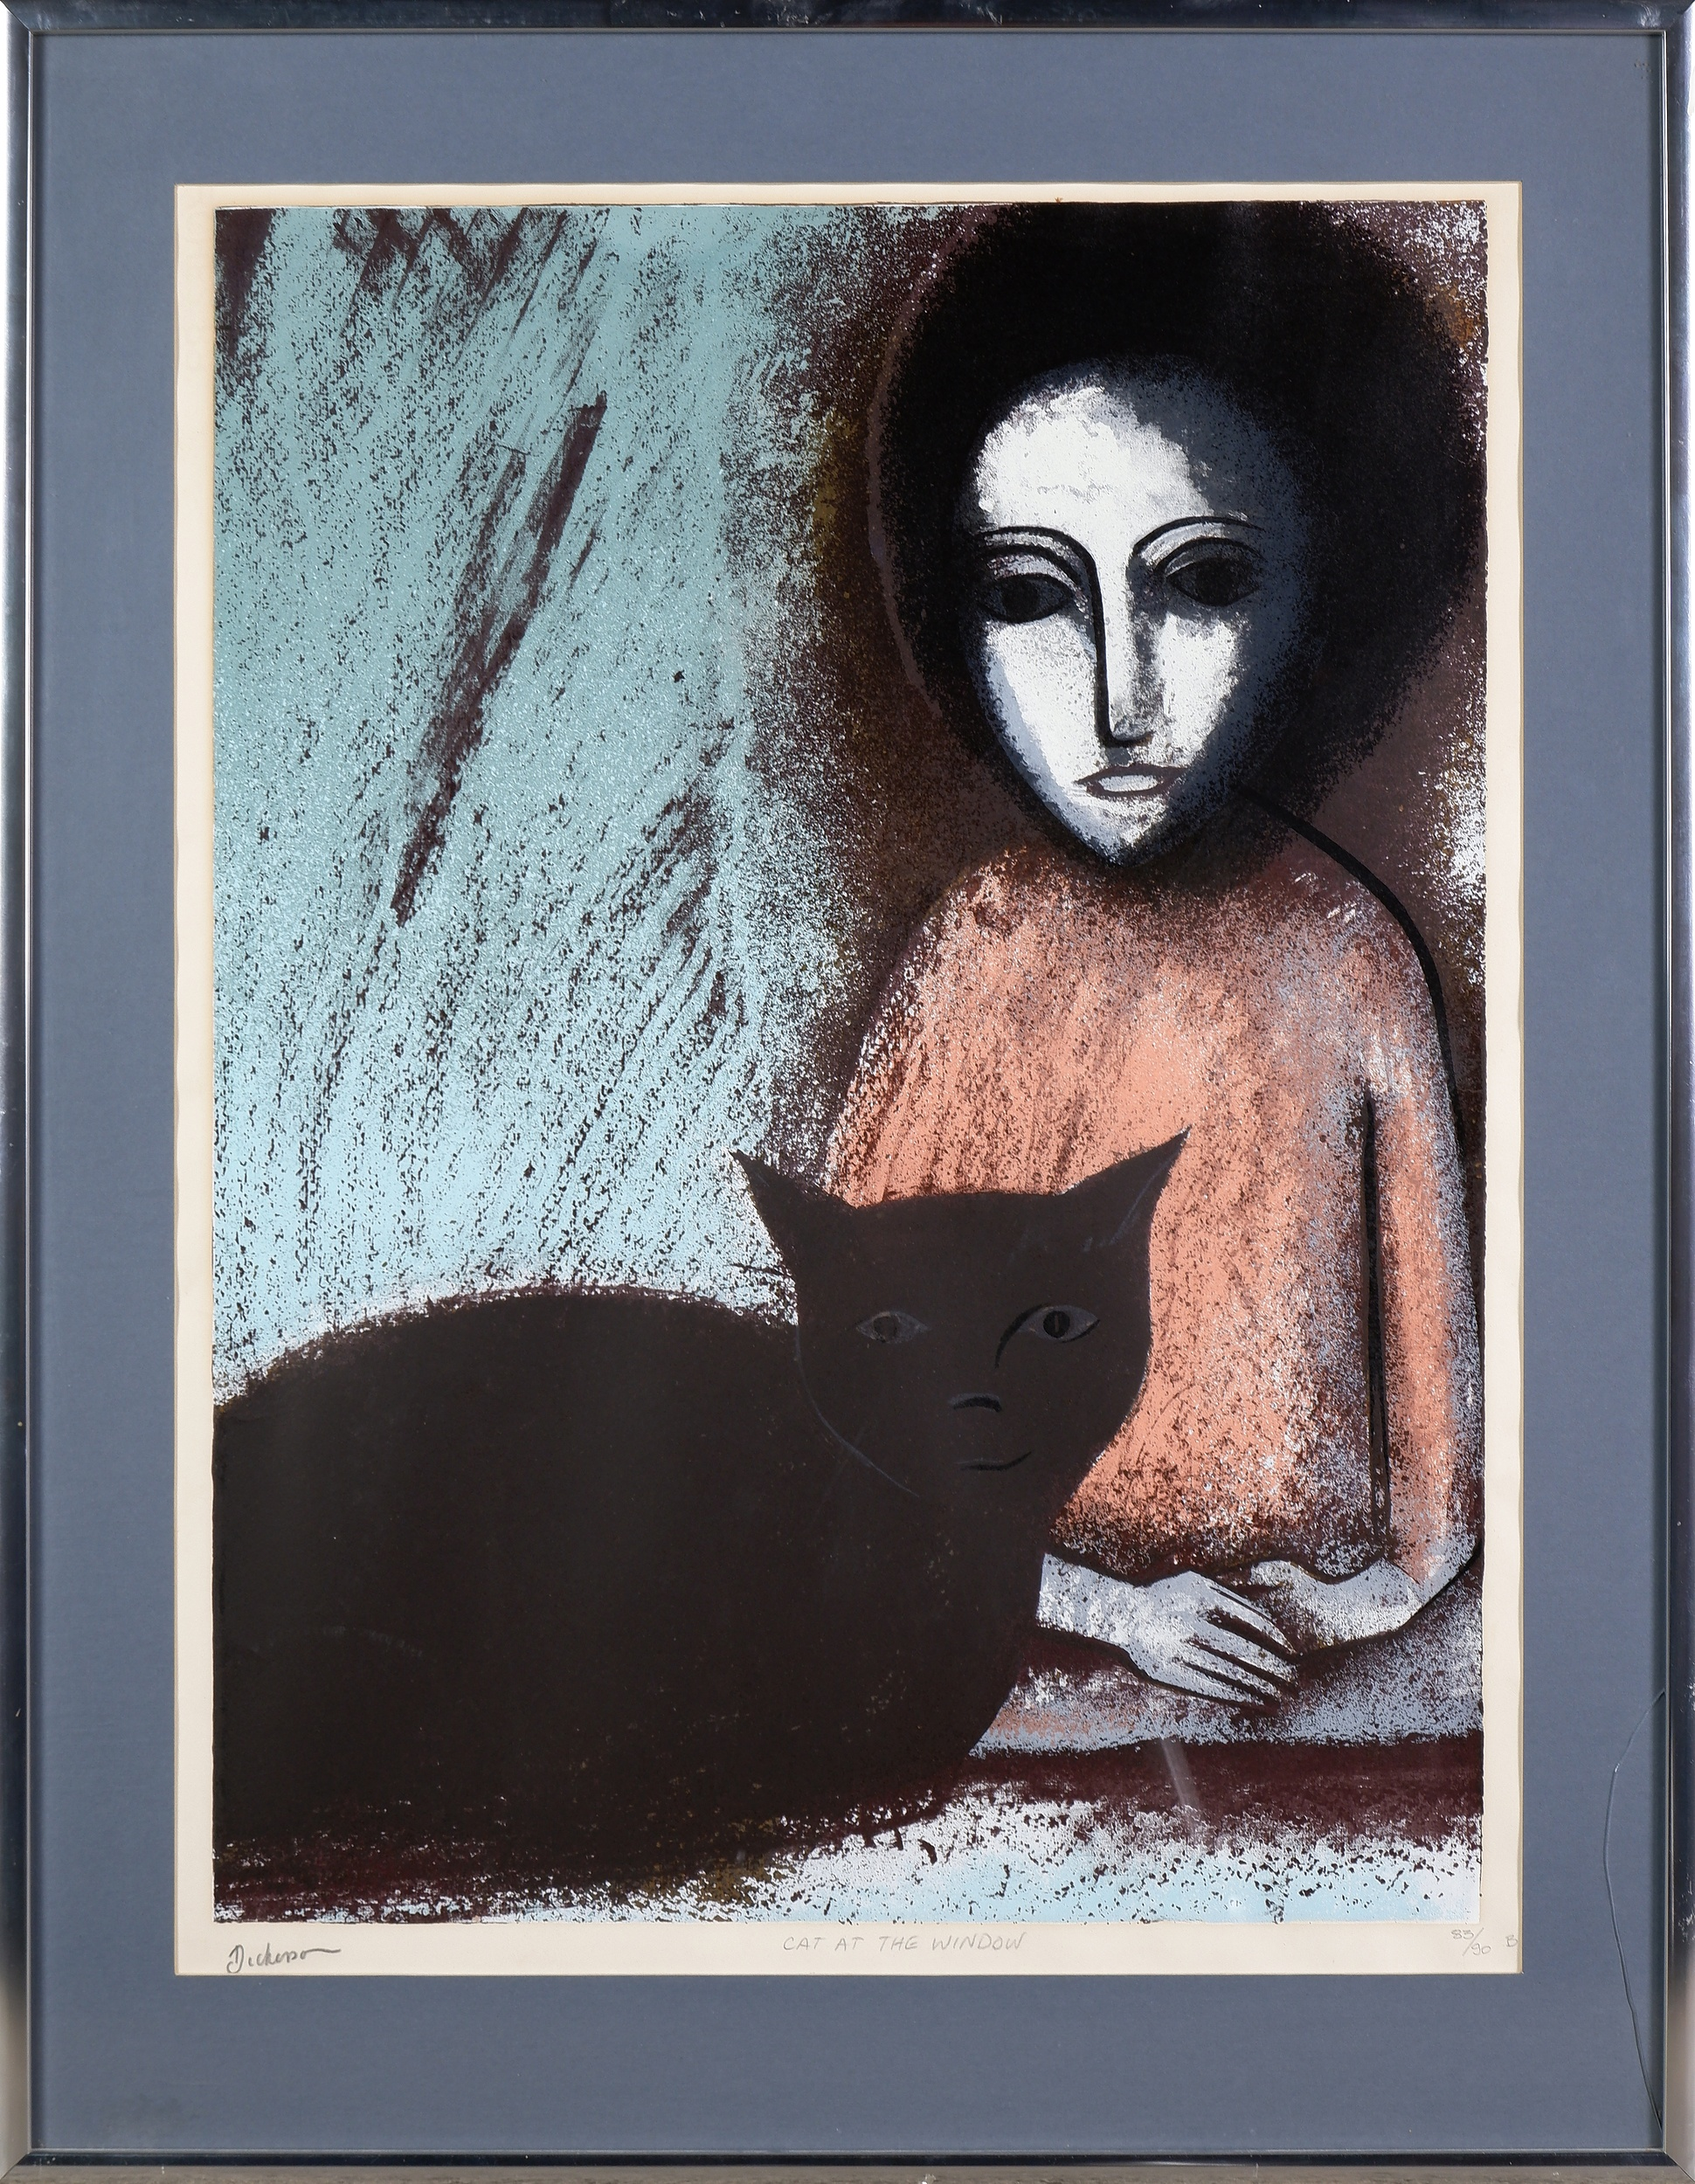 'Robert Dickerson (1924-2015), Cat at the Window, Lithograph'